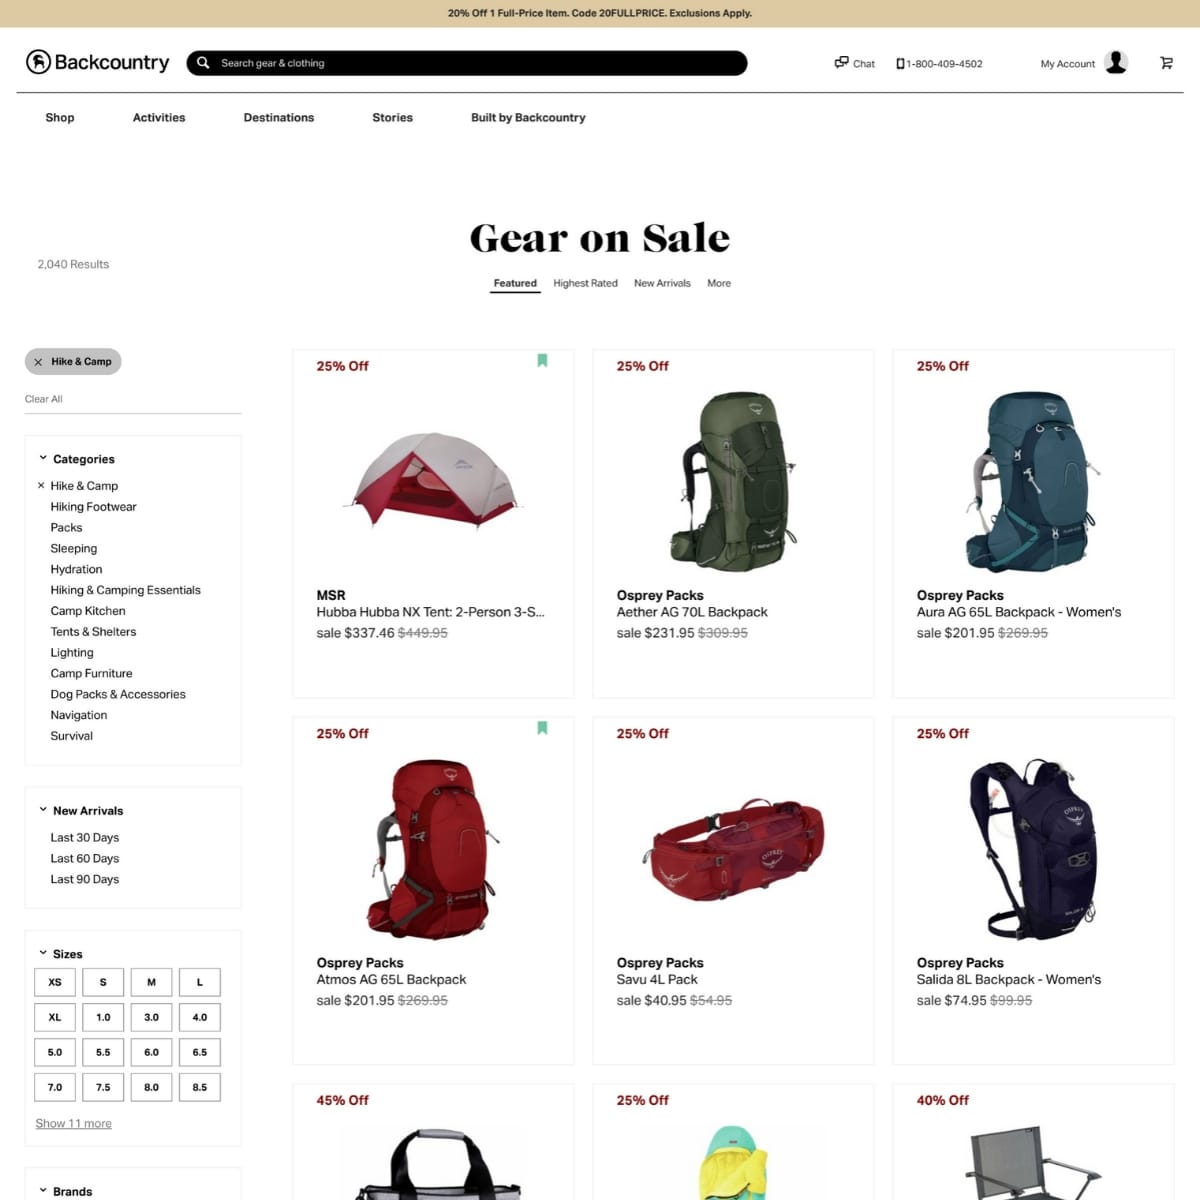 Screen shot of Backcountry website